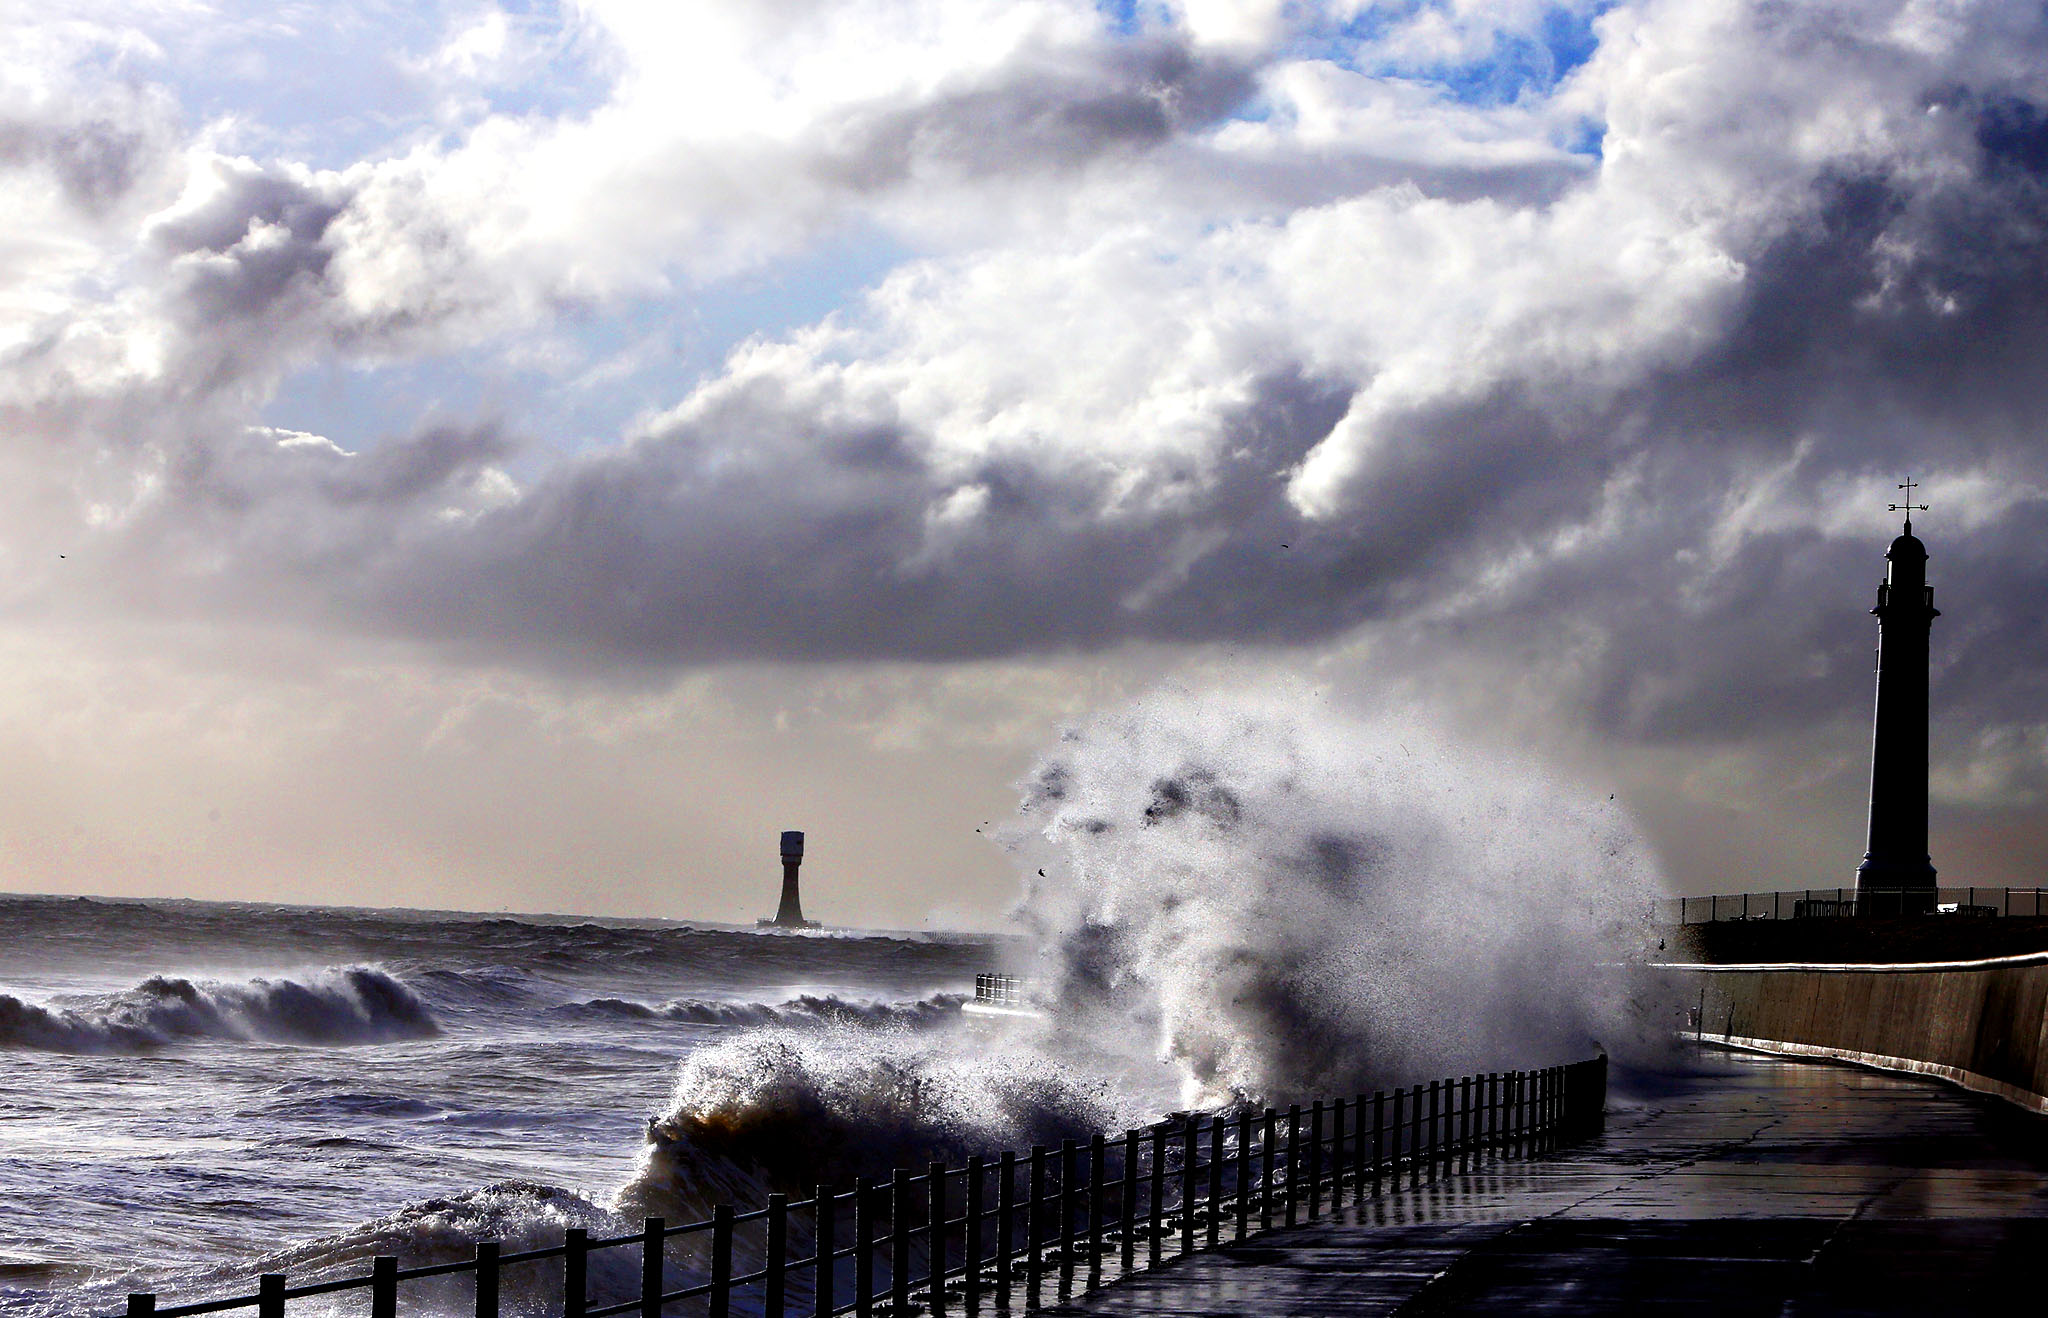 Heavy seas and waves crash over the seafront promenade at Seaburn, England, Thursday. The Environment Agency has issued flood warnings for low lying roads and coastal land along the North East coastline.